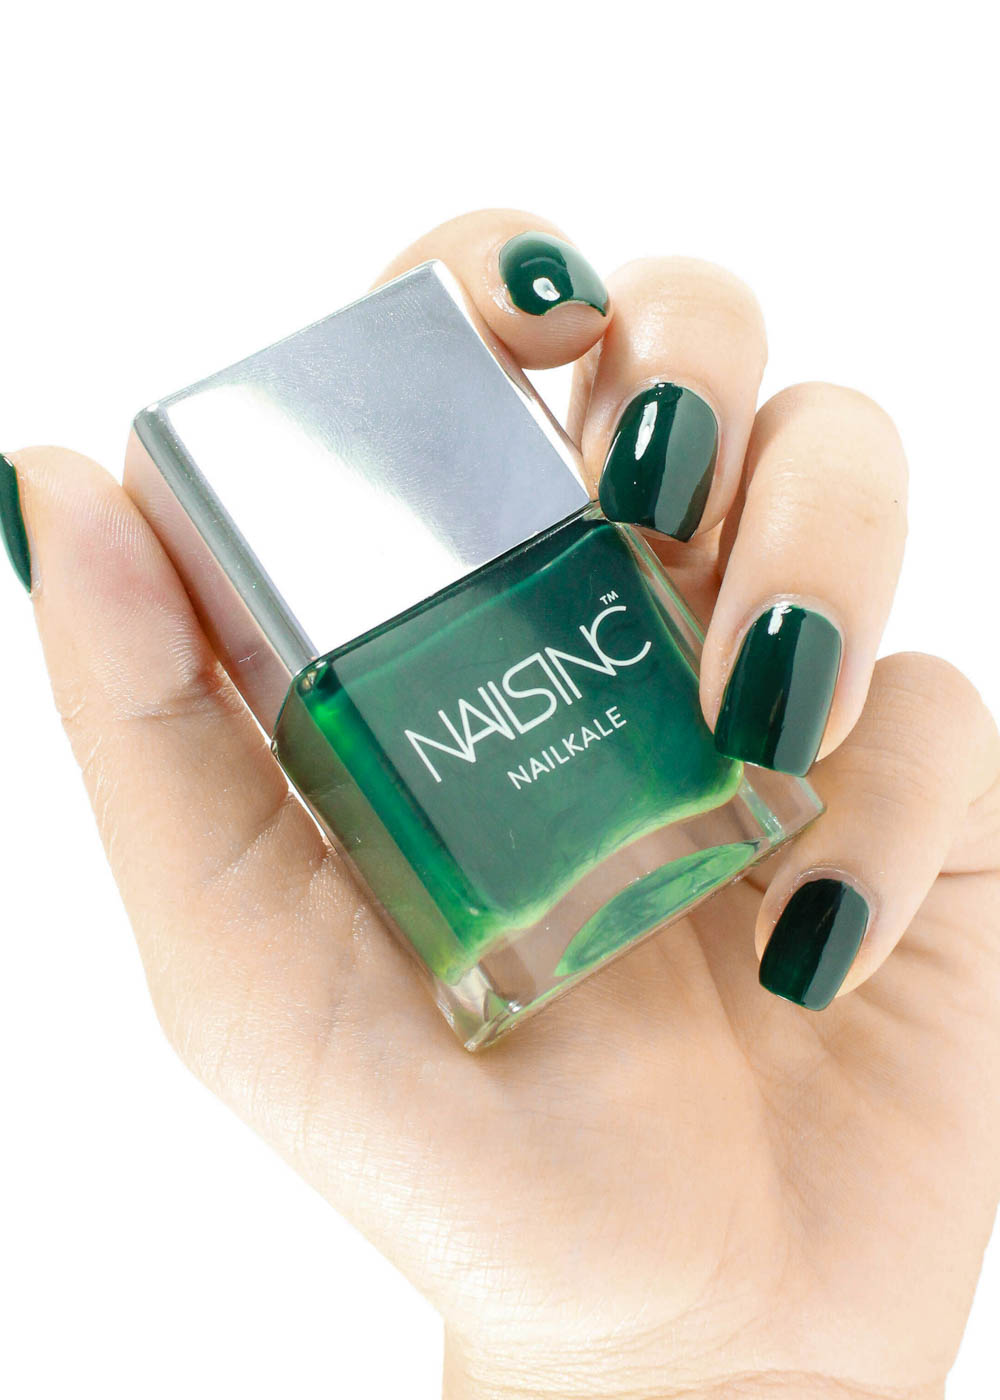 Top 5 Fall 2017 Nail Polishes To Wear | Nails Inc NailKale Bruton Mews Review | The Beauty Vanity